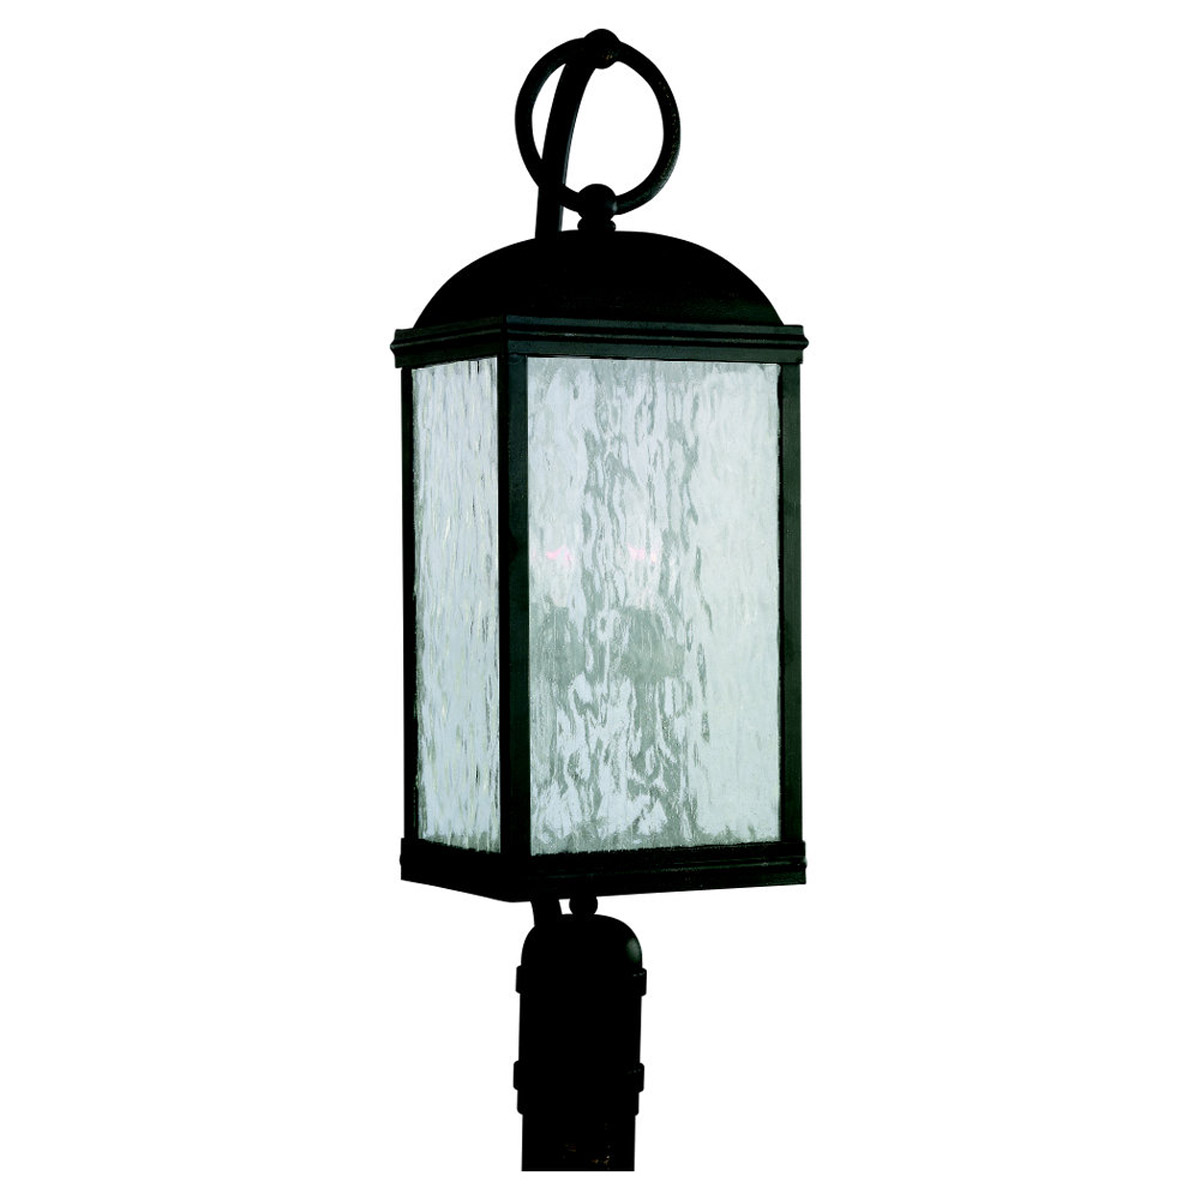 Sea Gull Lighting Branford 2 Light Outdoor Post Lantern in Obsidian Mist 82190-802